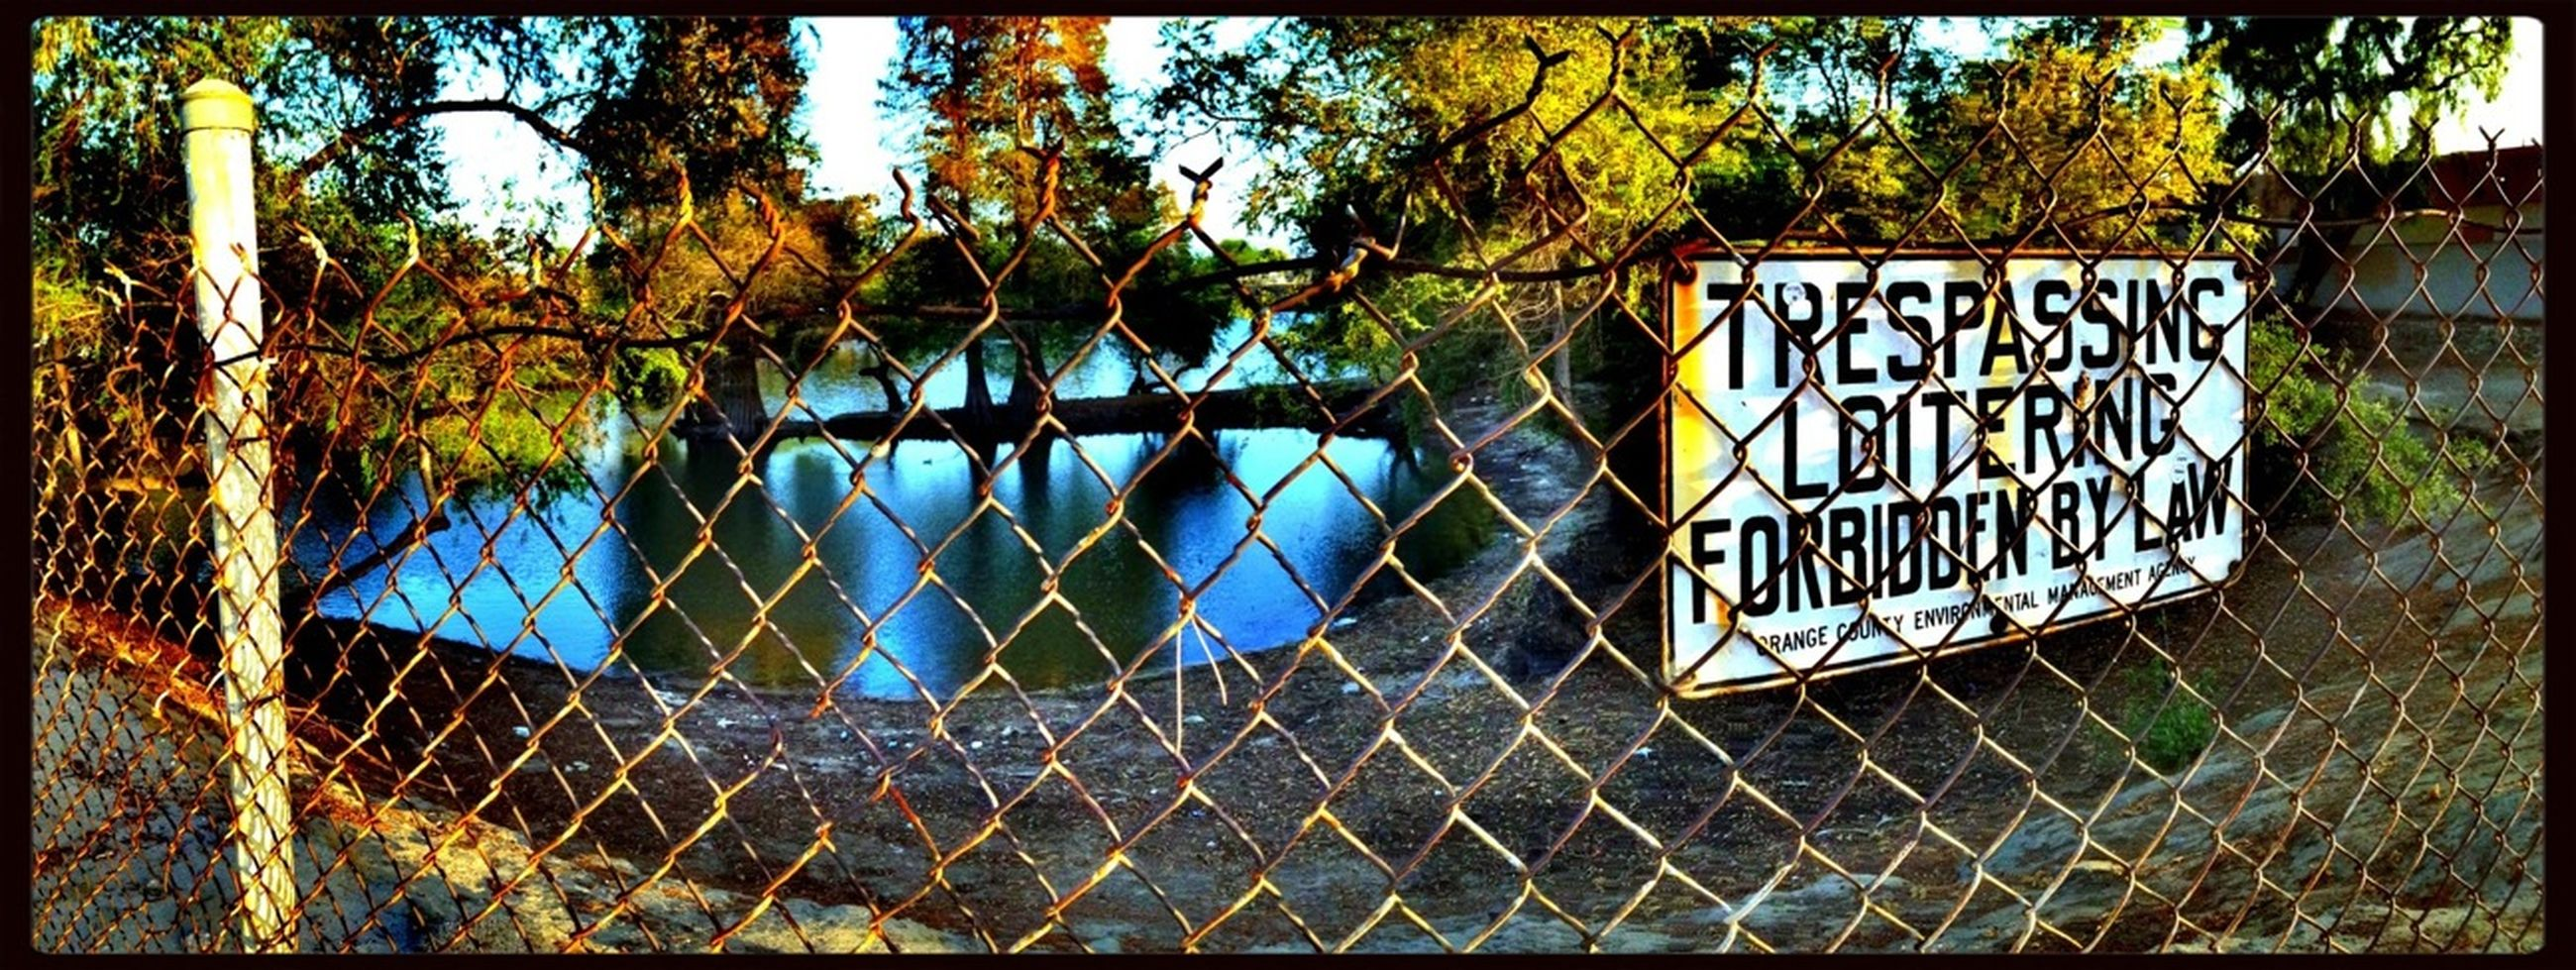 tree, text, western script, built structure, fence, transfer print, communication, architecture, blue, day, railing, protection, safety, sign, growth, chainlink fence, no people, sunlight, branch, outdoors